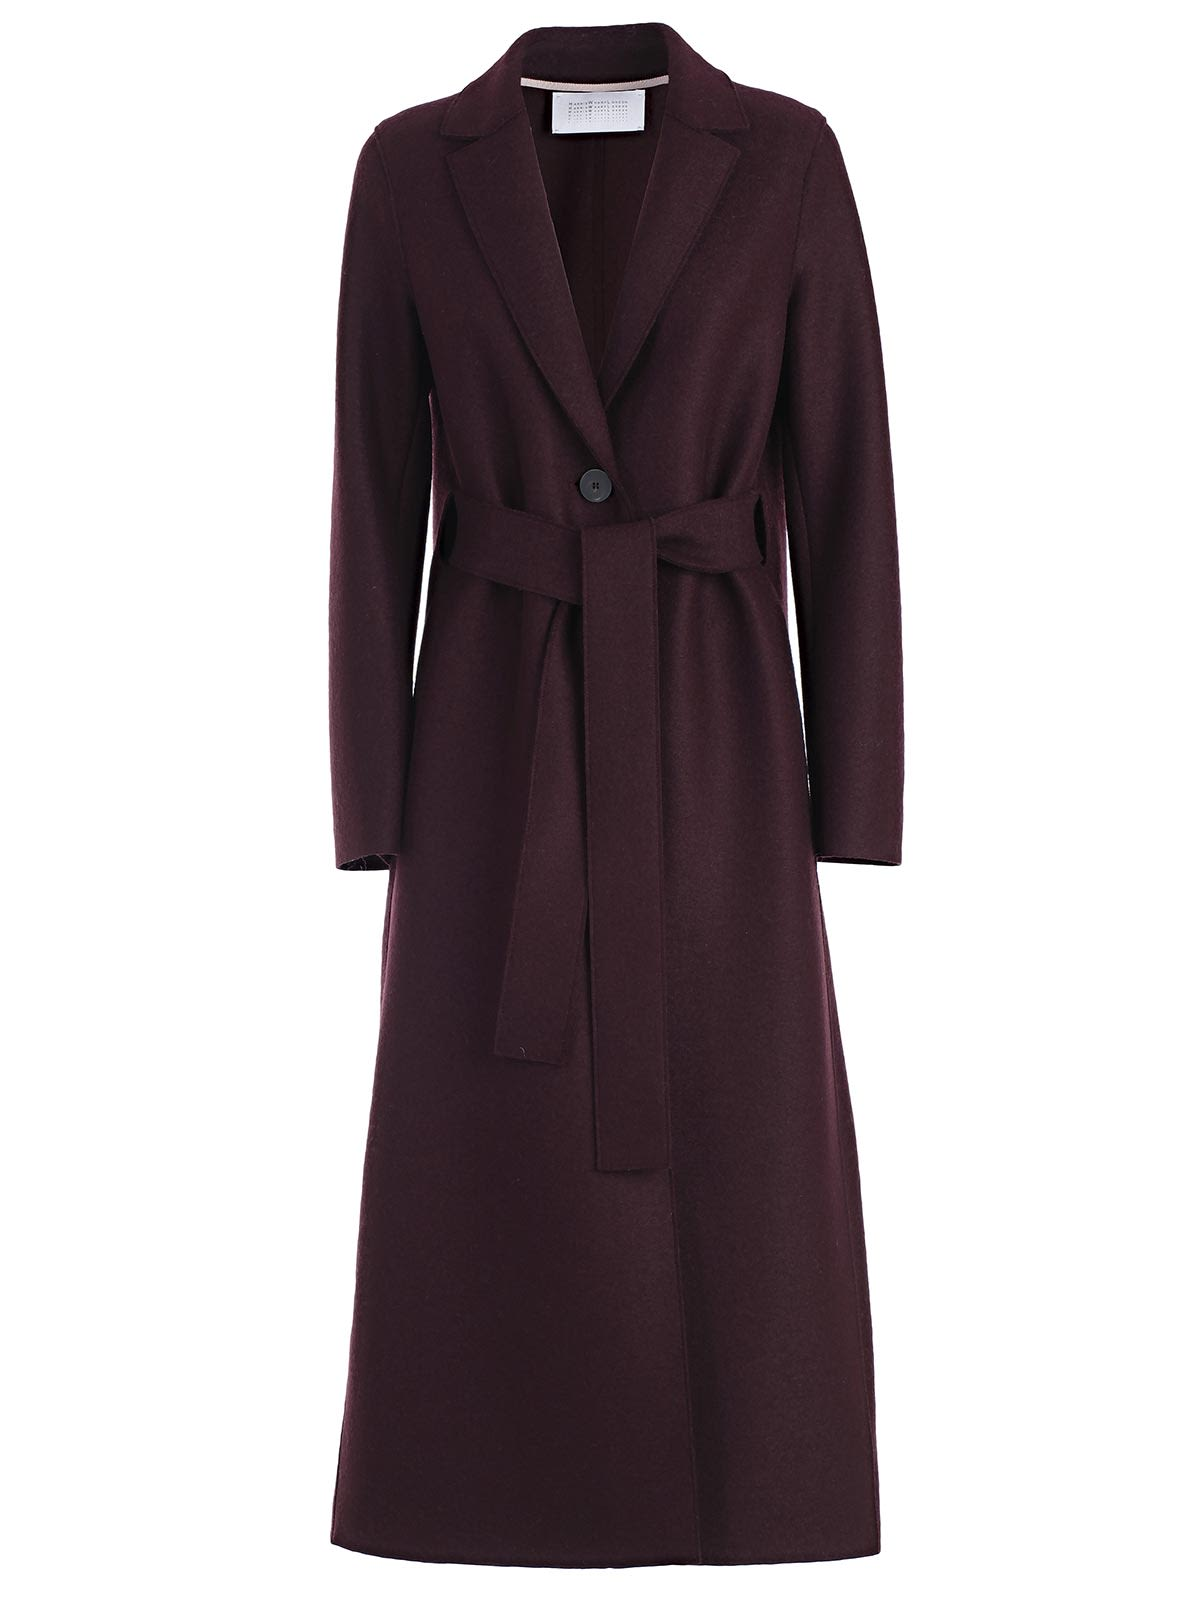 HARRIS WHARF LONDON BELTED WRAPPED COAT